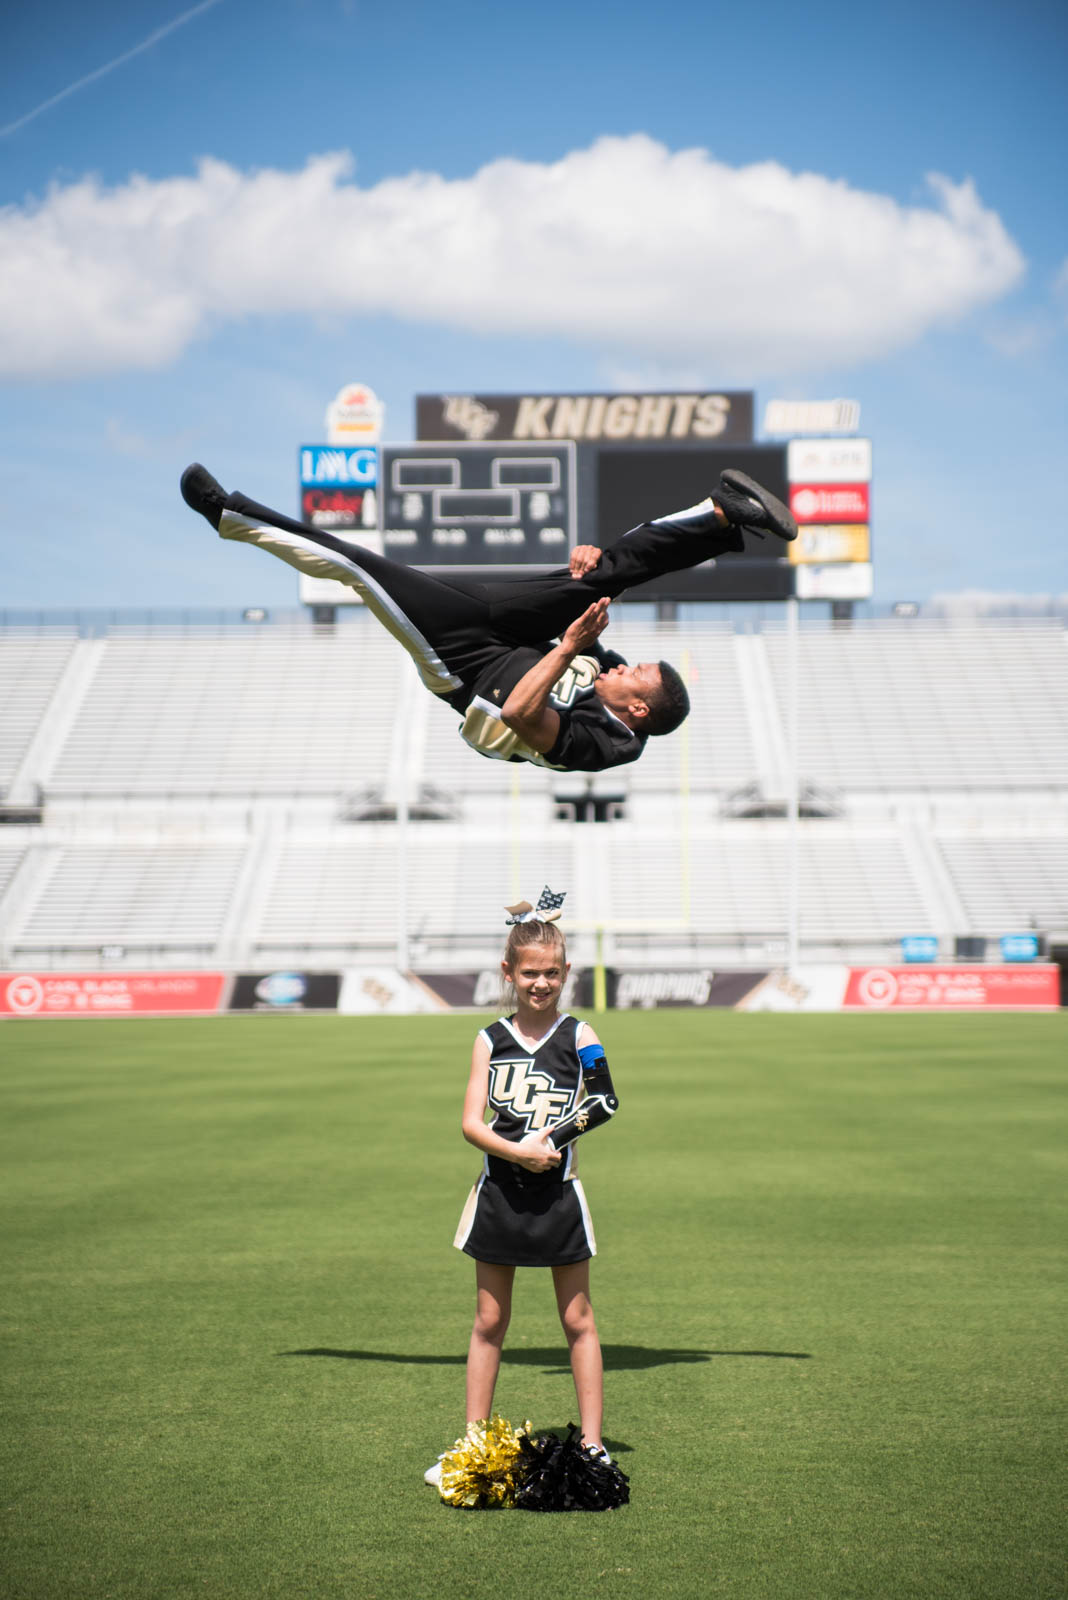 ucf-best-of-photos-cheerleaders-limbitless-solution